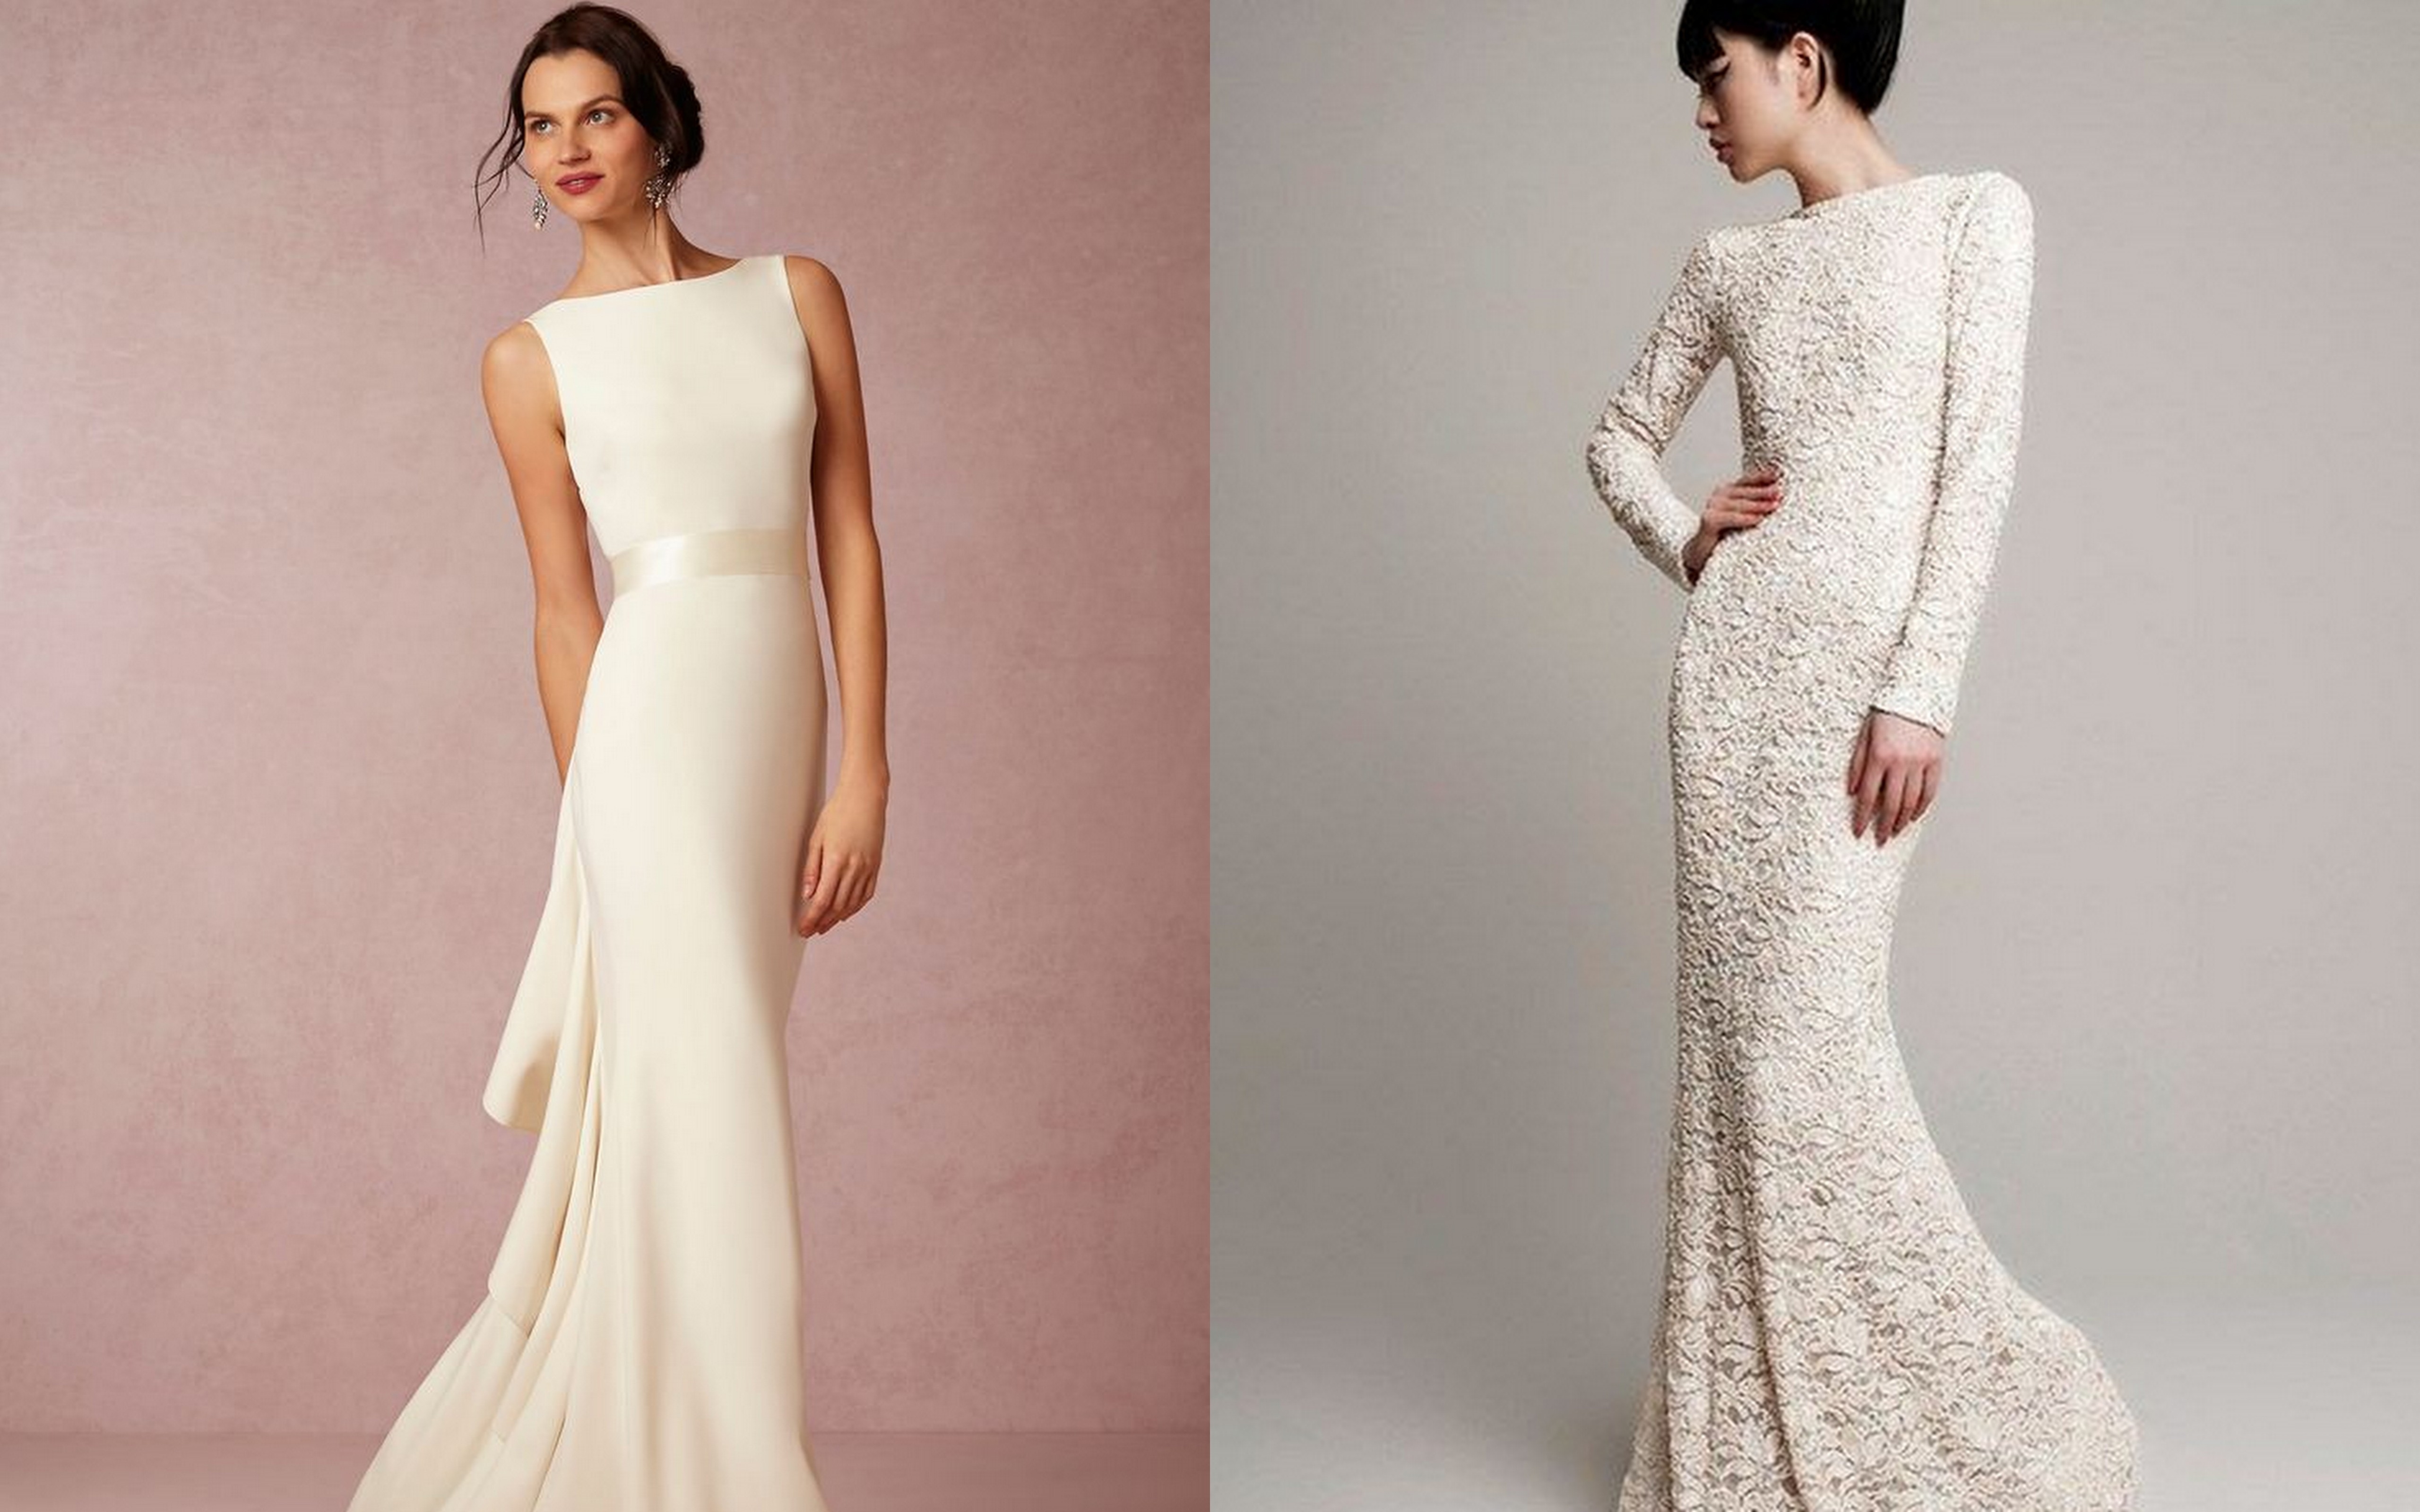 0f5a6a71df34 How to Choose the Best Dress for Your Body Shape